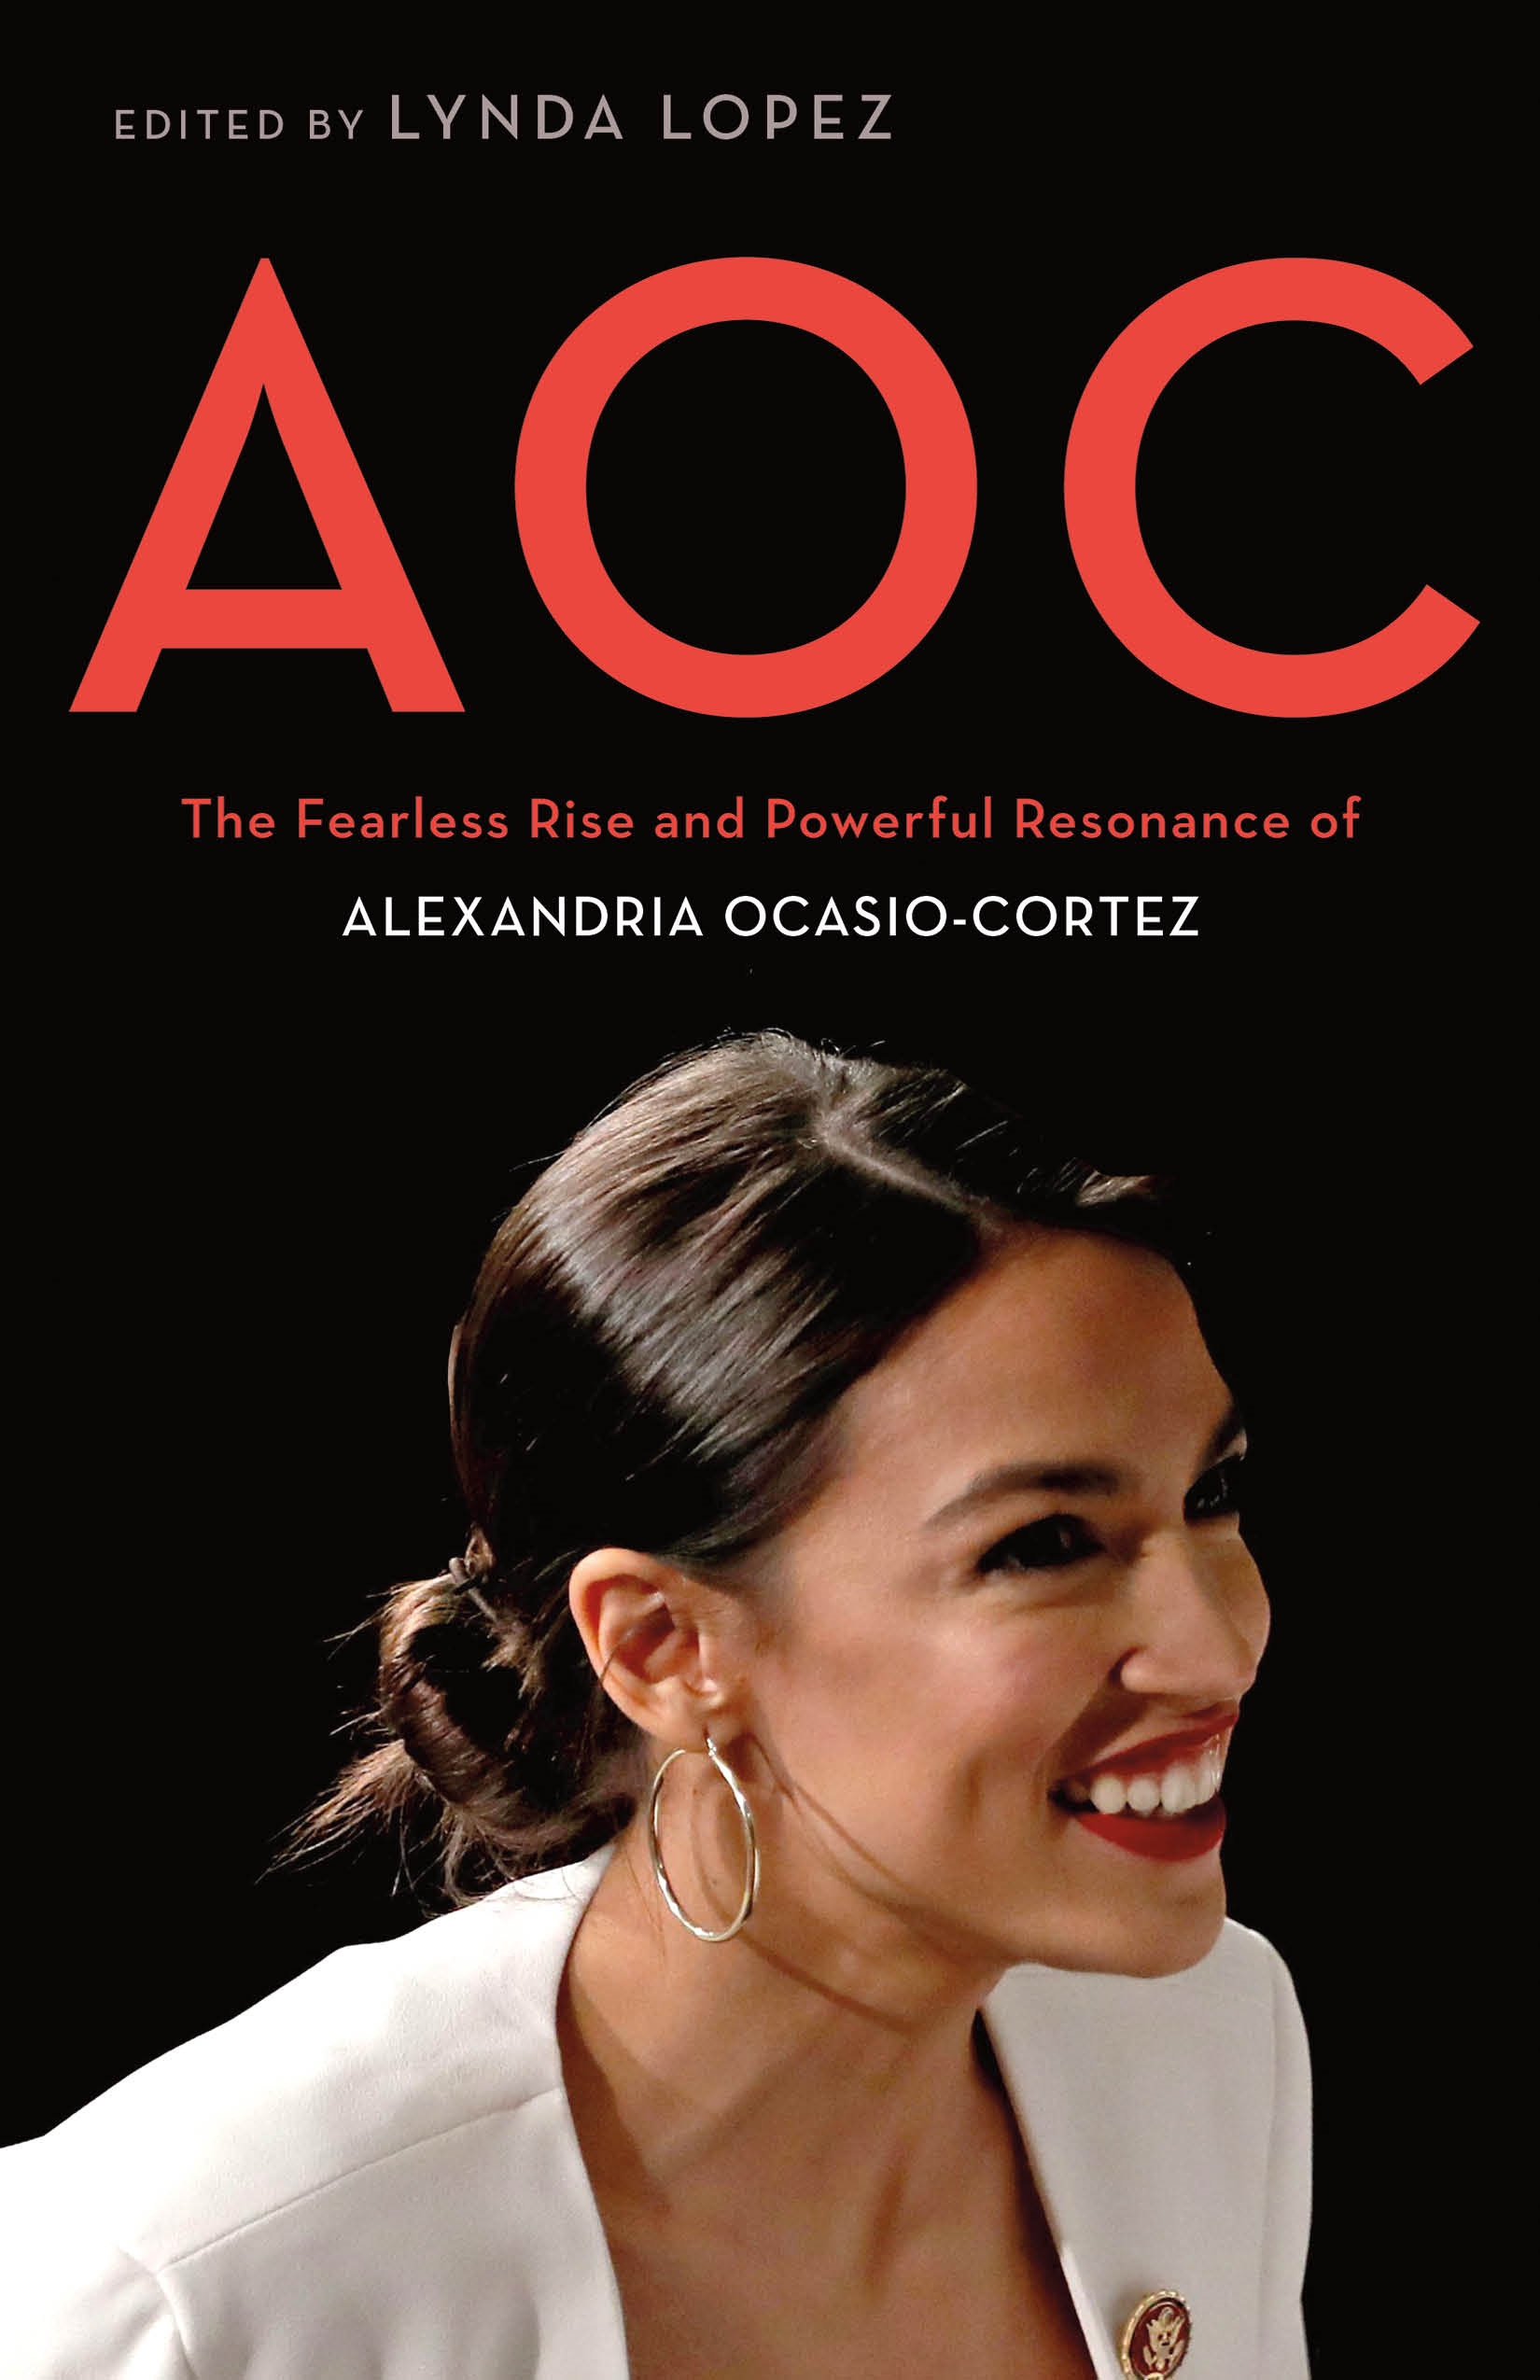 AOC The Fearless Rise and Powerful Resonance of Alexandria Ocasio-Cortez